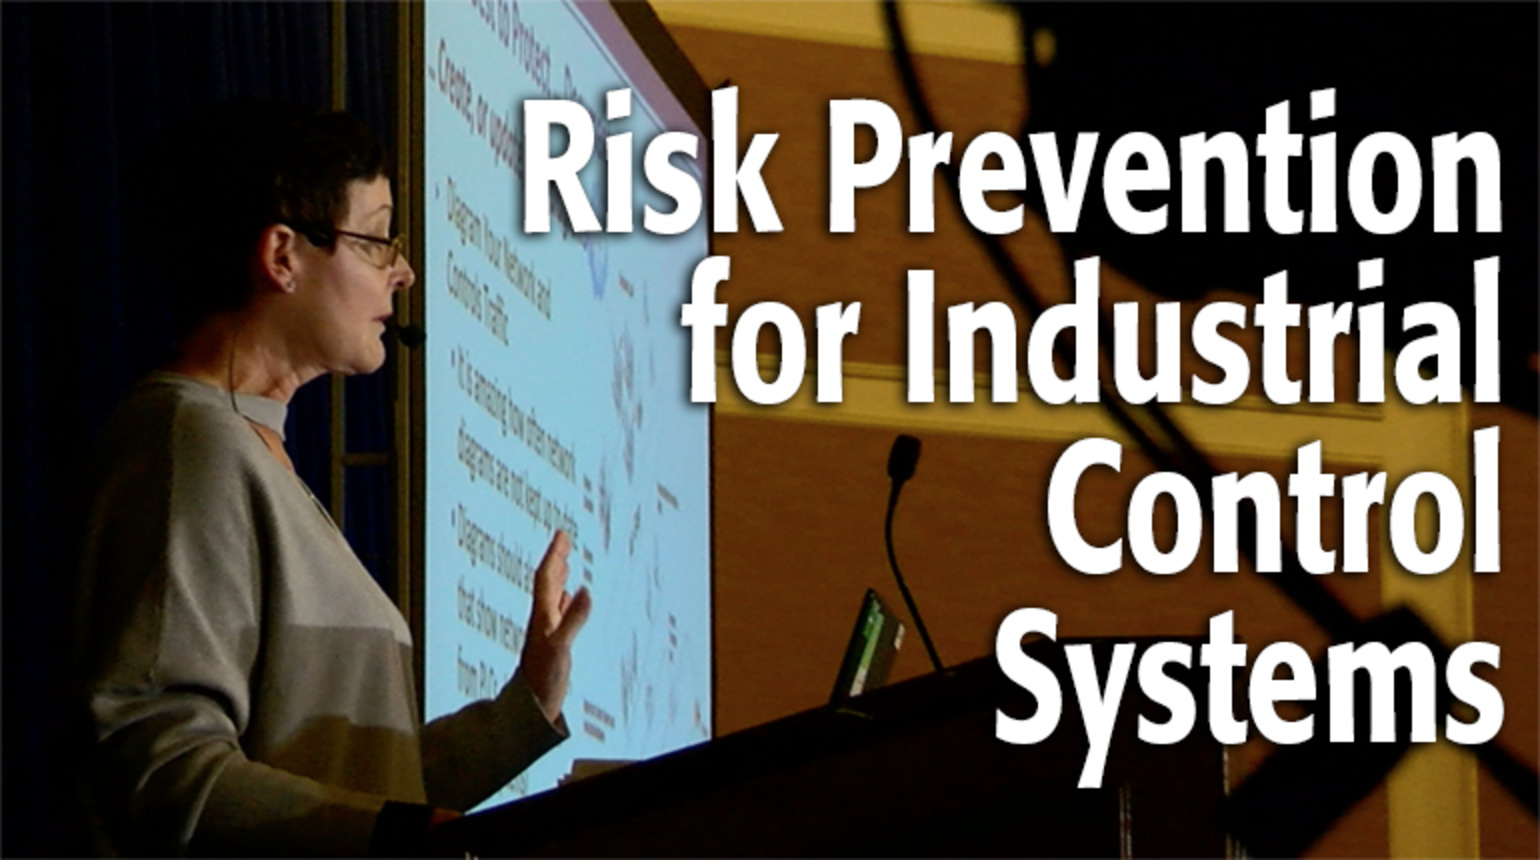 Risk Prevention for Industrial Controls: IECON 2018